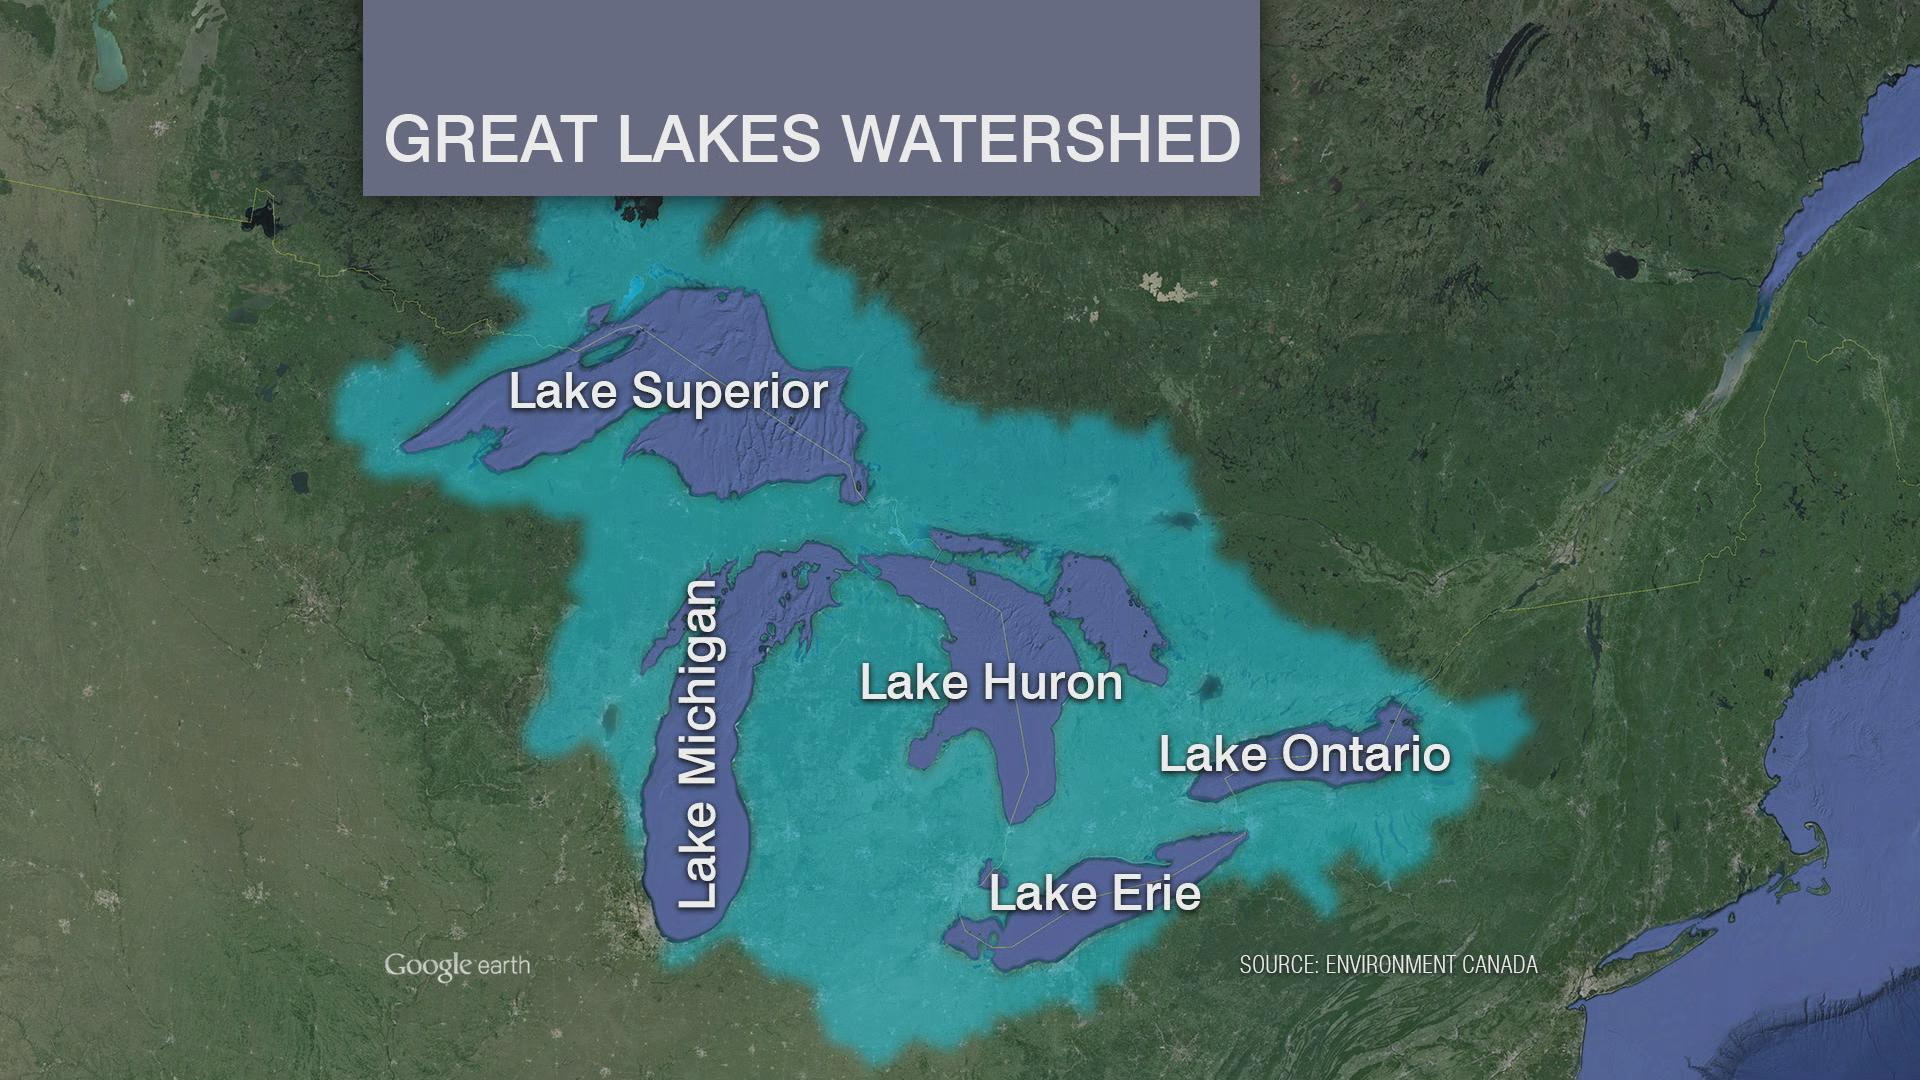 The Great Lakes Watershed